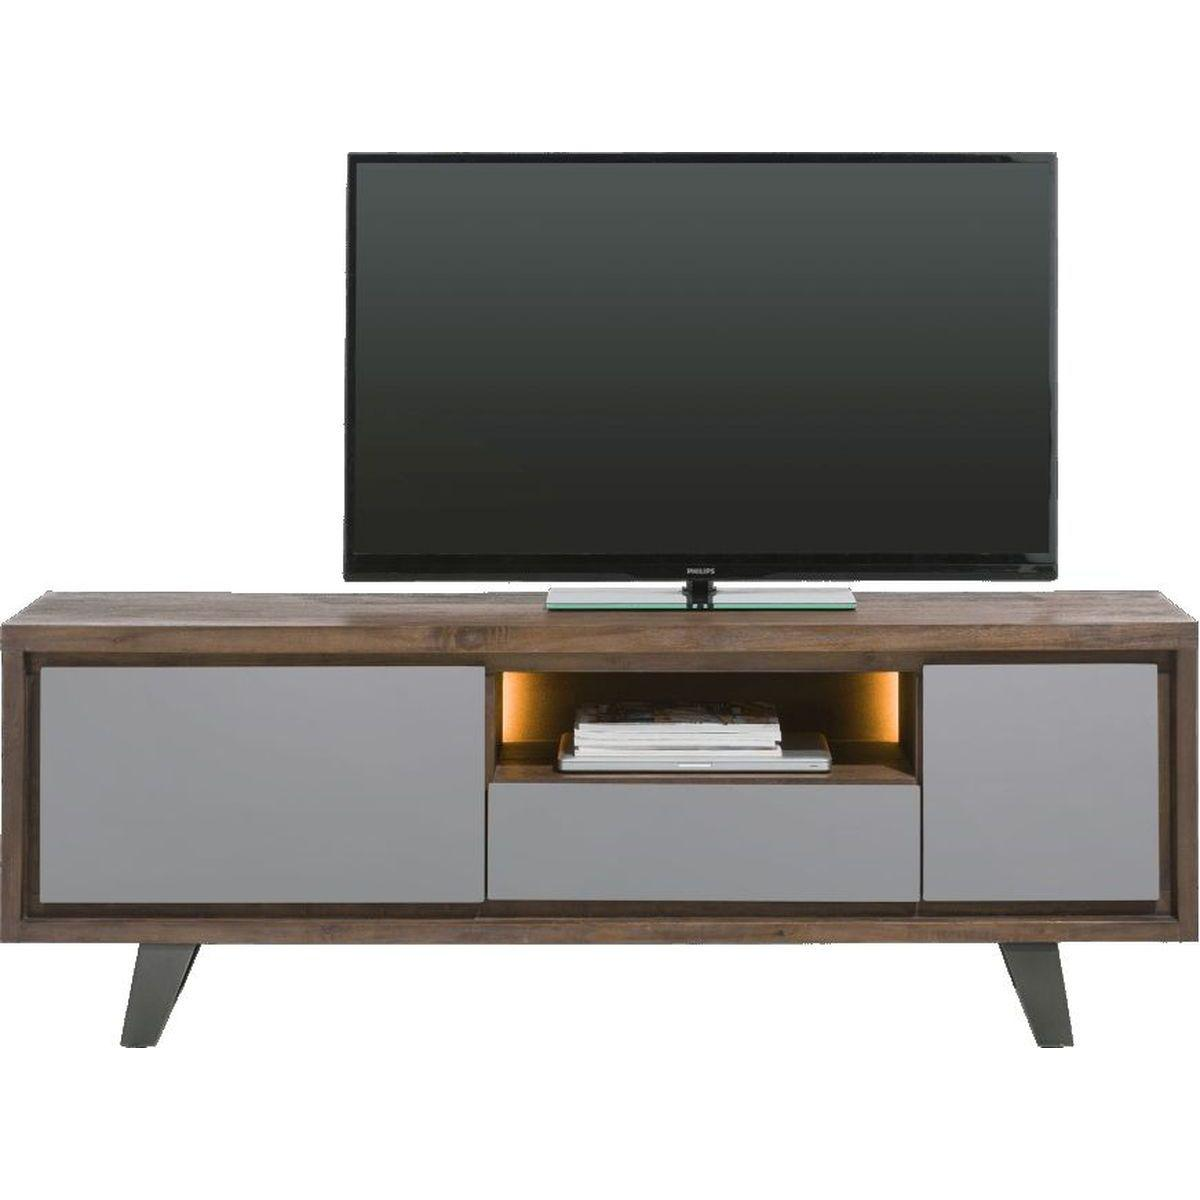 Meuble TV BOX HetH 170cm Tramwood Walnut gris